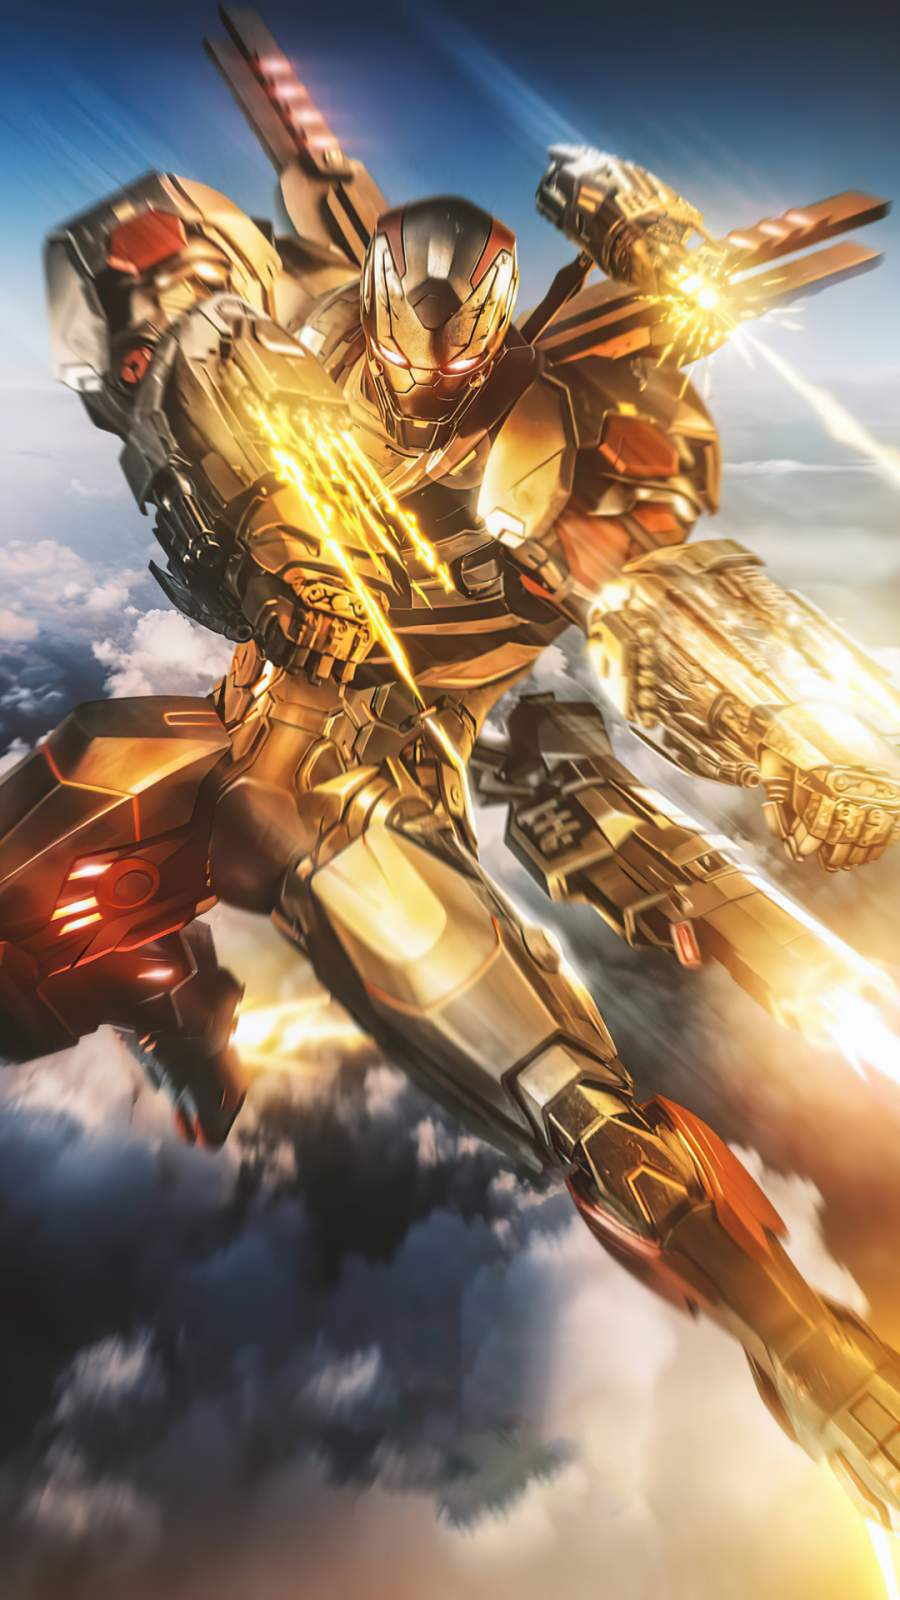 Armor Wars tv series james rhodes as war machine 4K